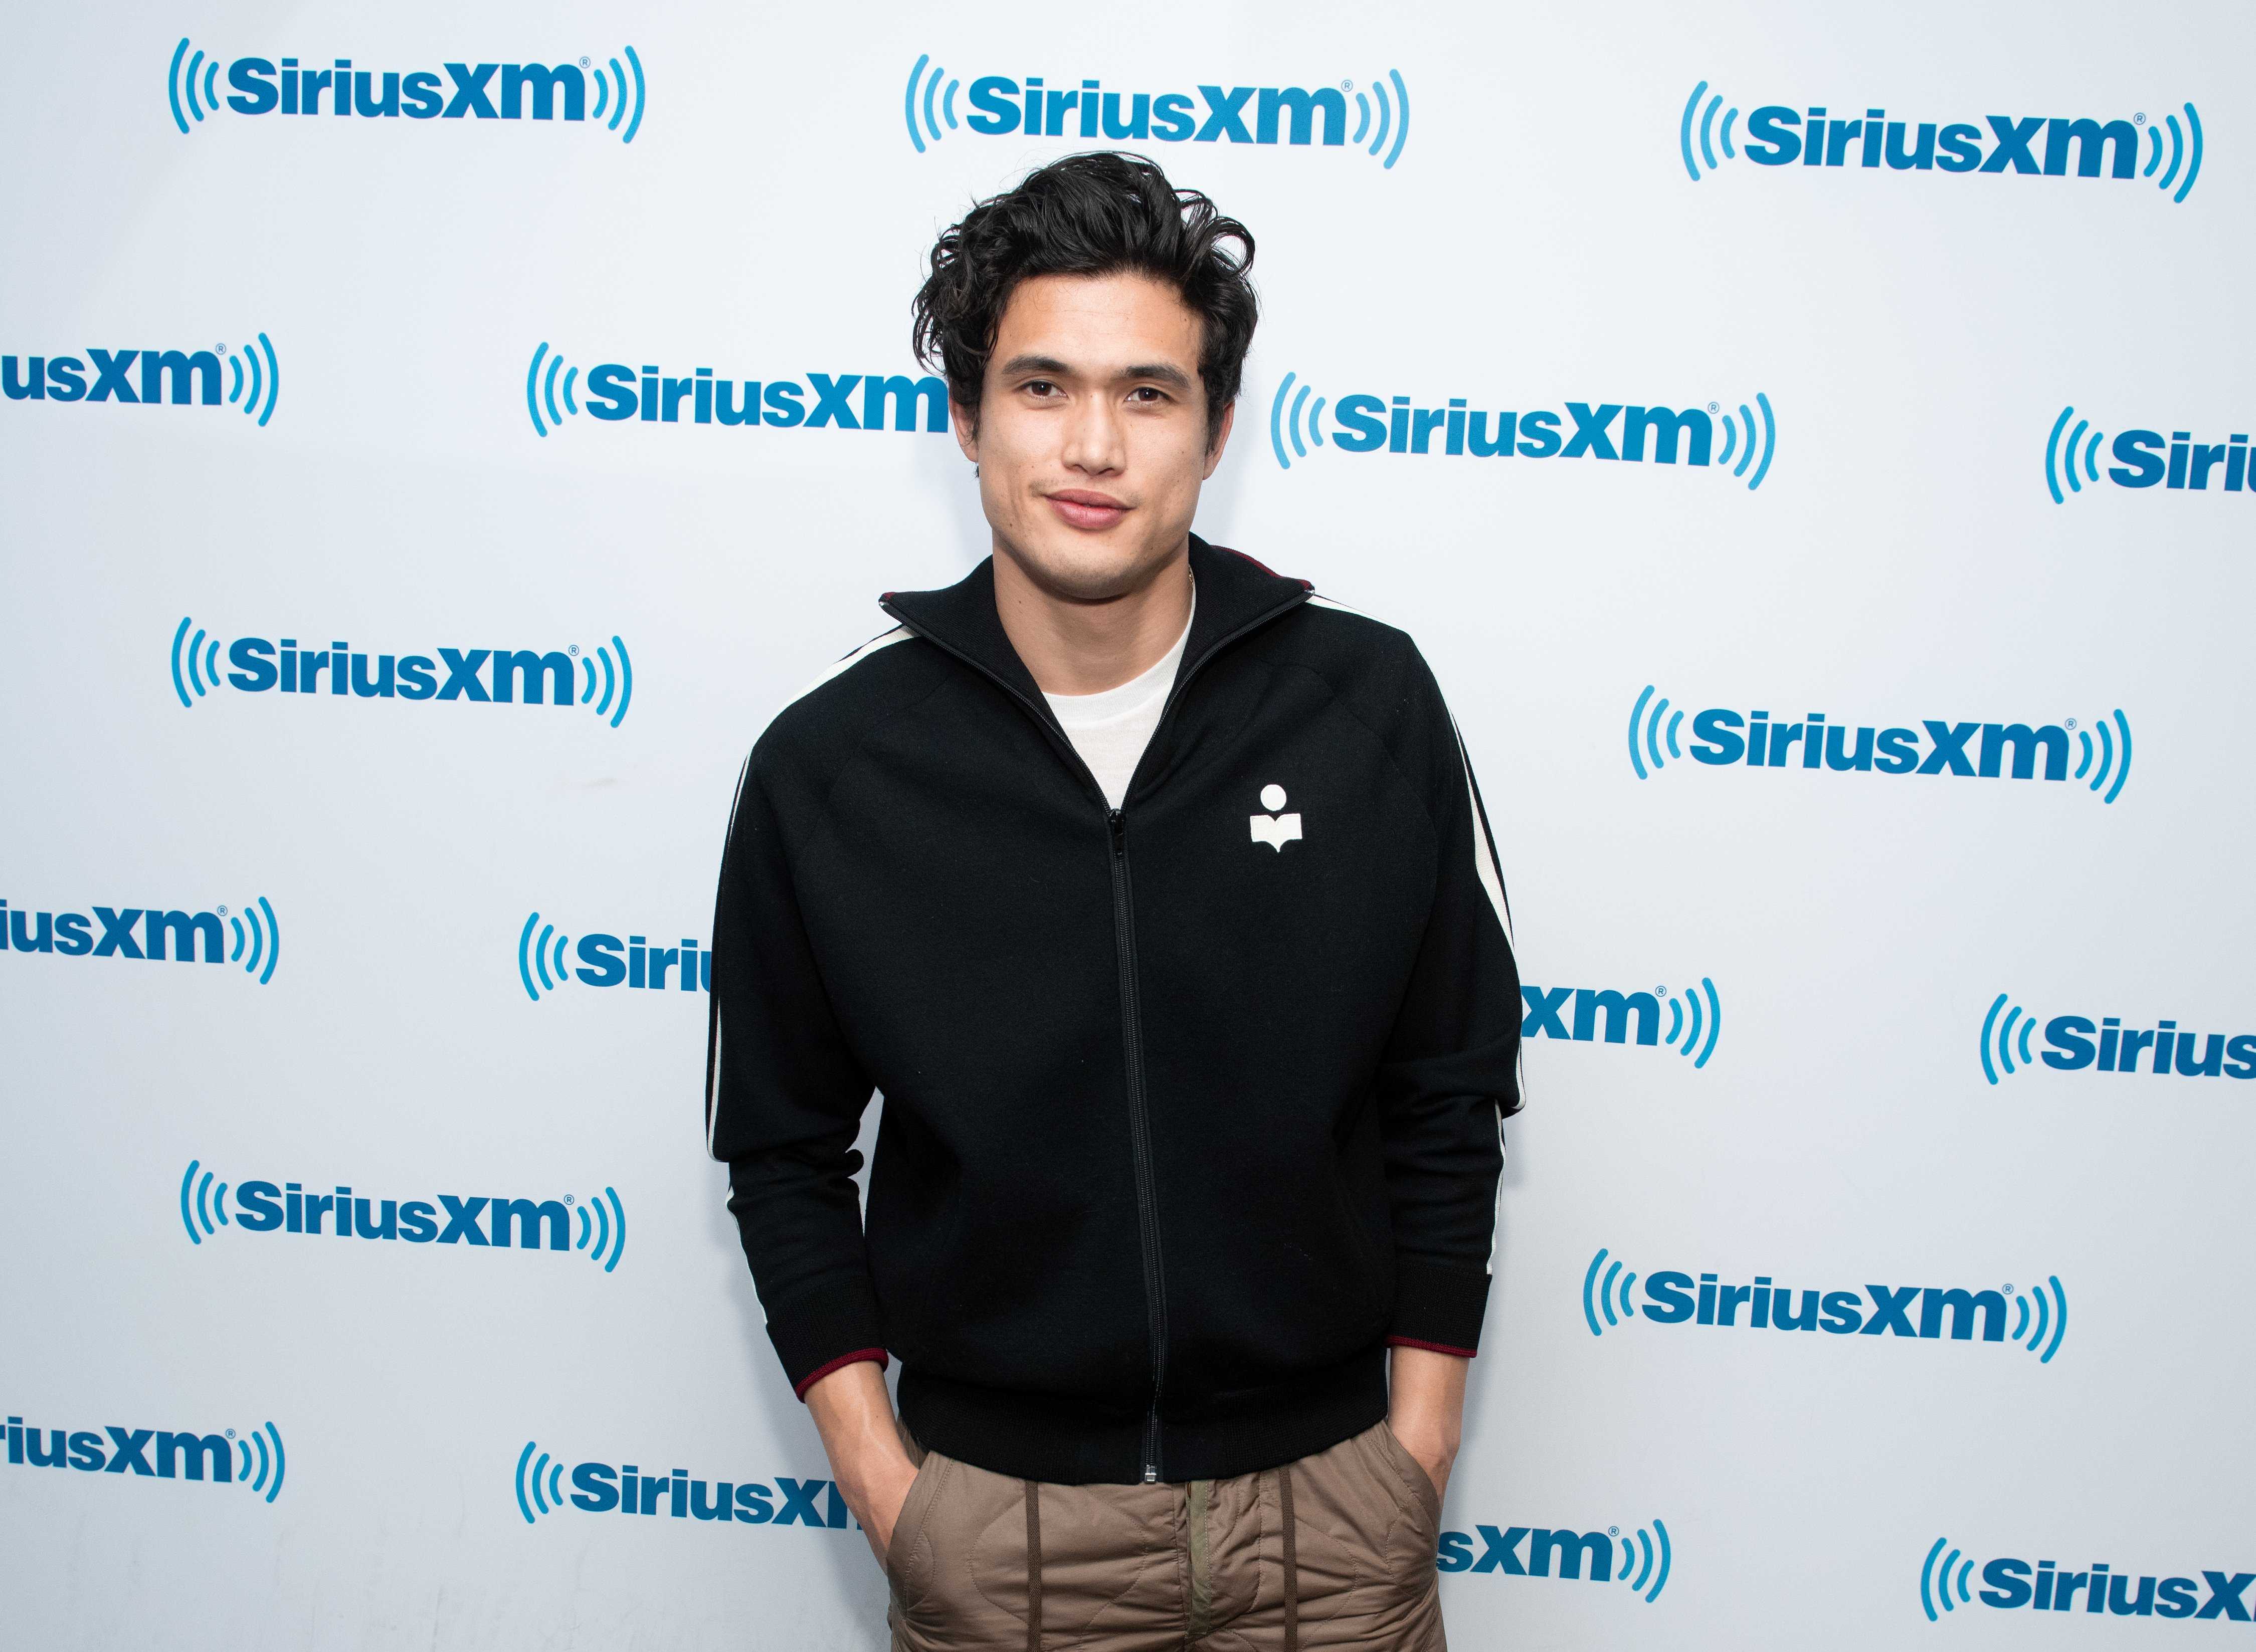 Image Source: Getty Images| Charles posing at the even of Sirius XM